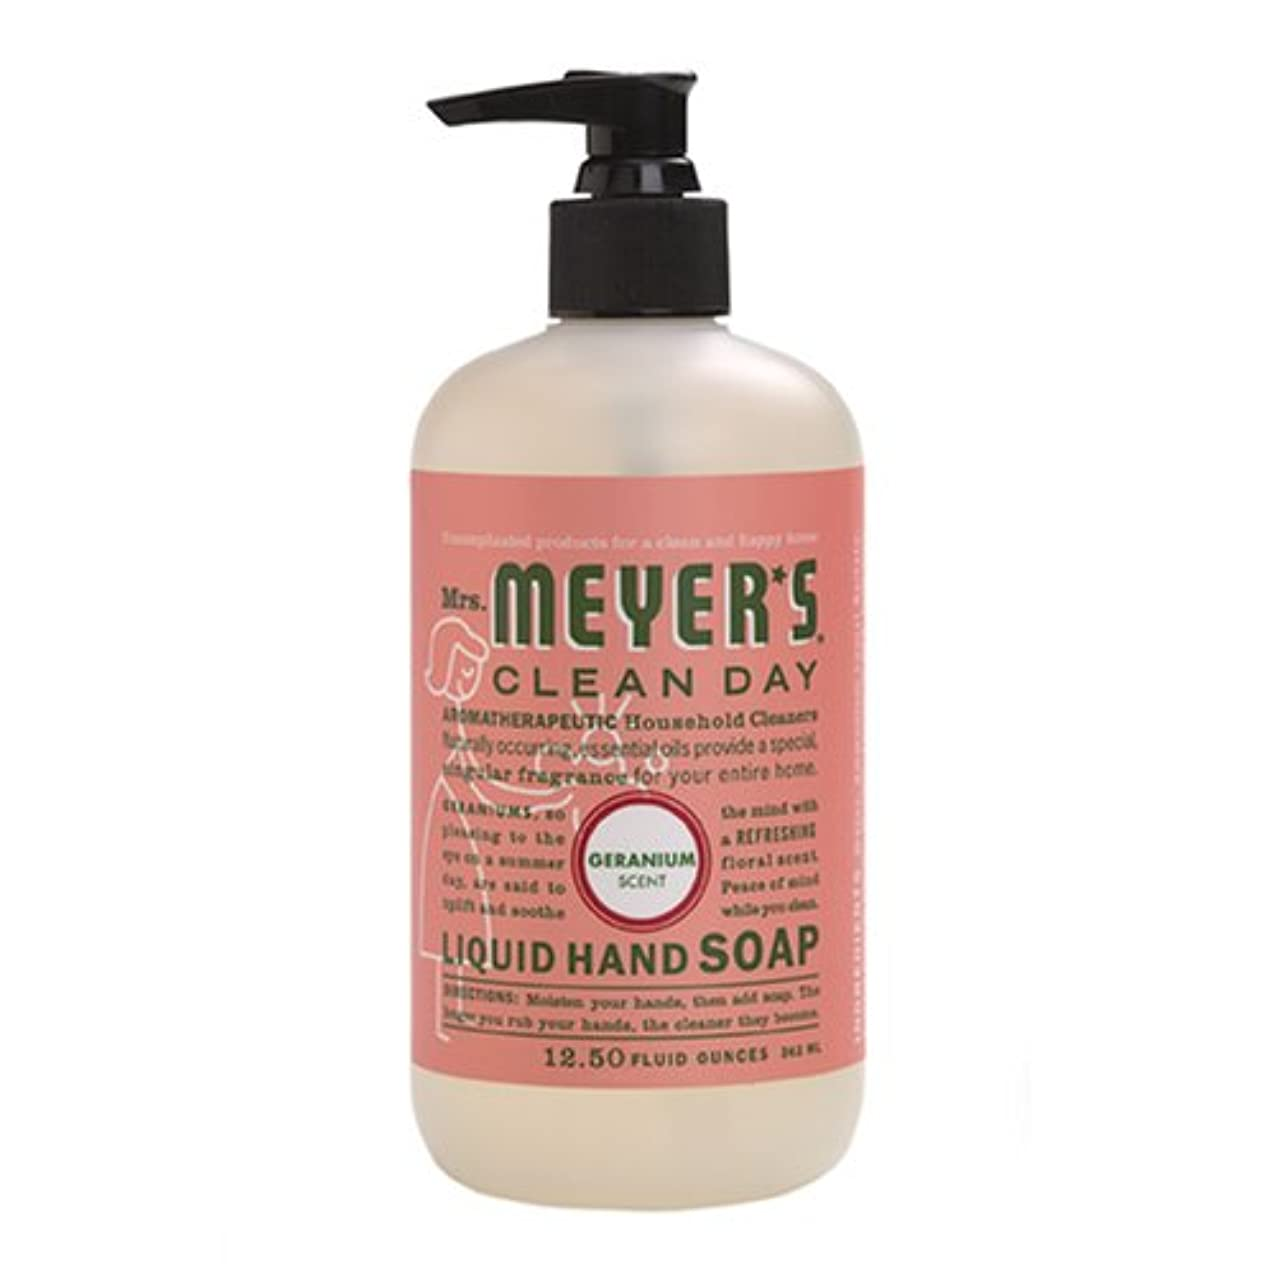 うっかりスポーツマン祭りMrs. Meyers Clean Day, Liquid Hand Soap, Geranium Scent, 12.5 fl oz (370 ml)